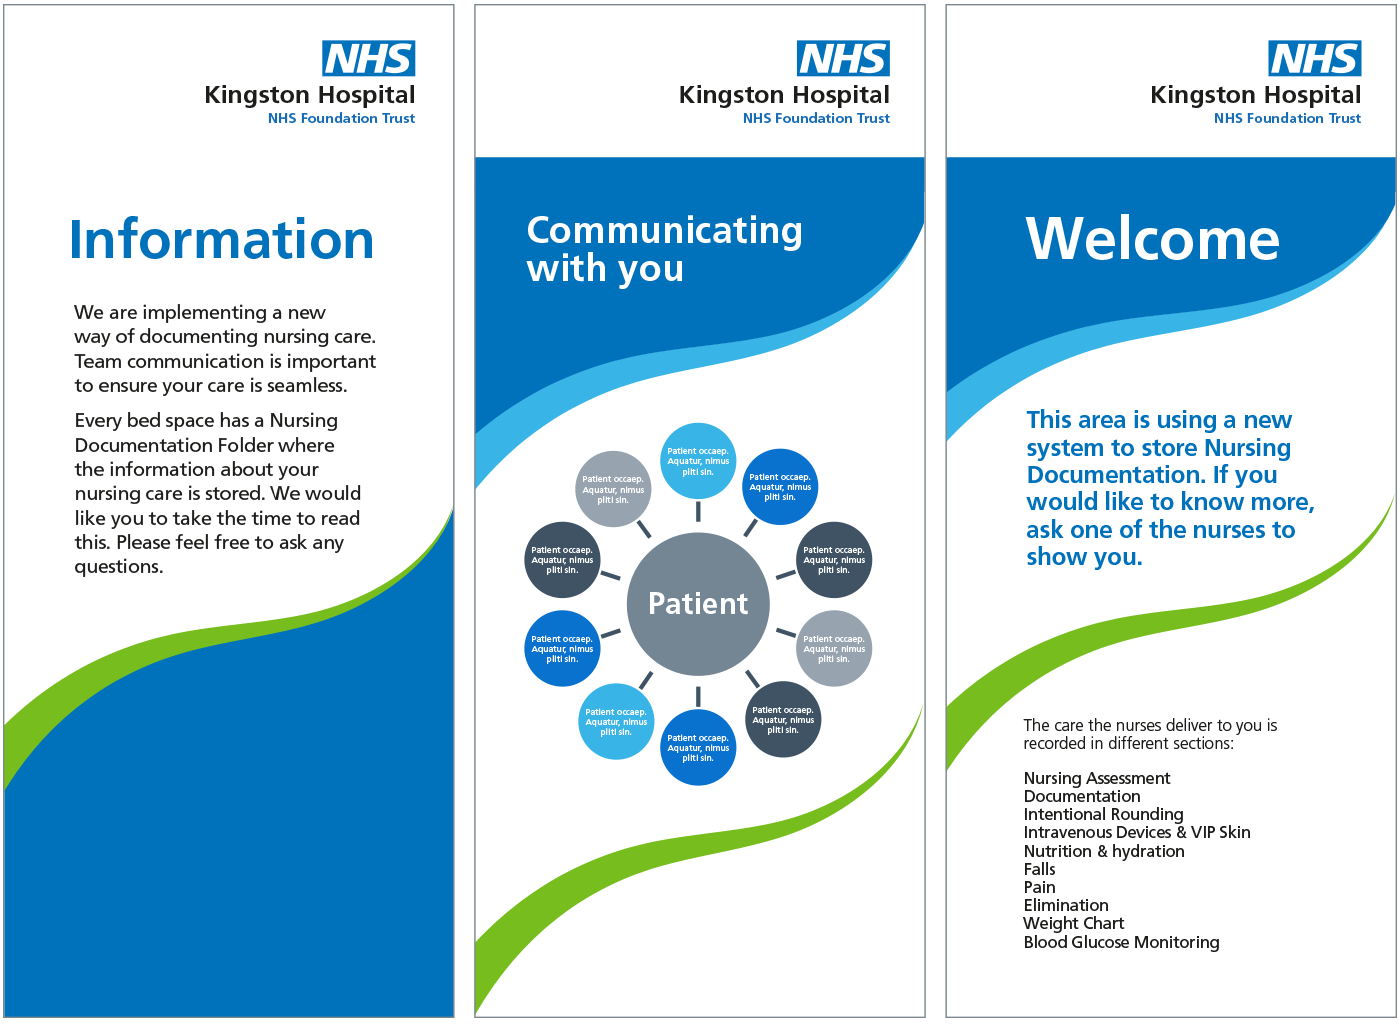 Patient information leaflet